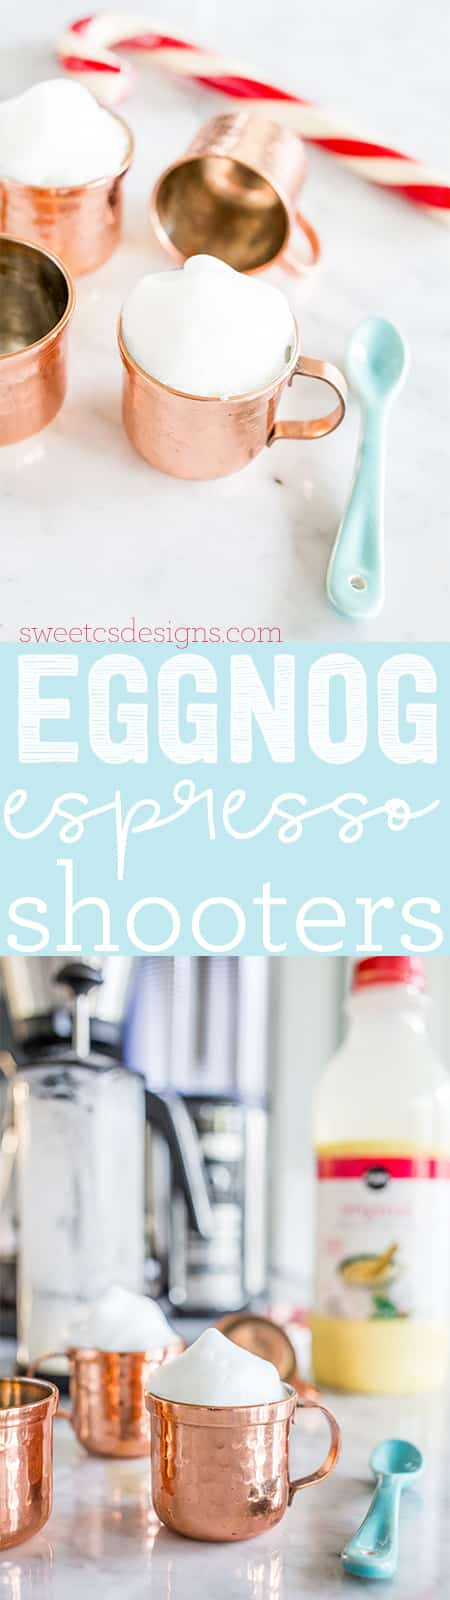 Eggnog shooters with espresso- YUM!